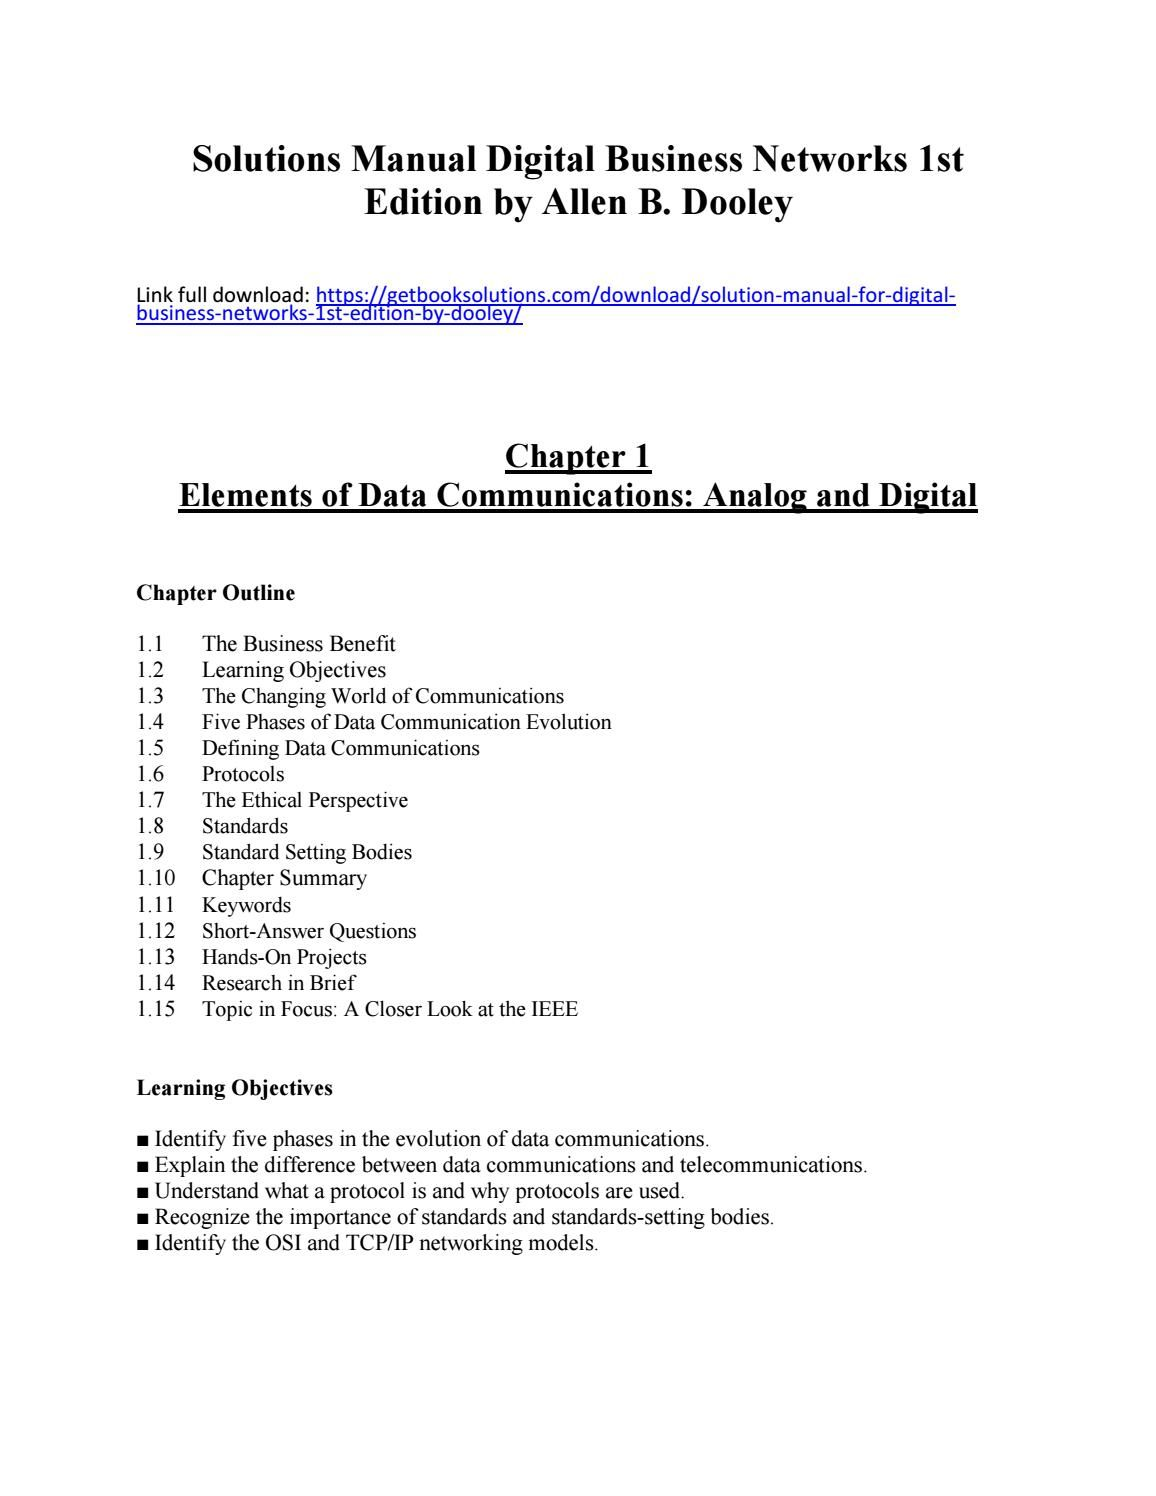 Solutions manual digital business networks 1st edition allen dooley